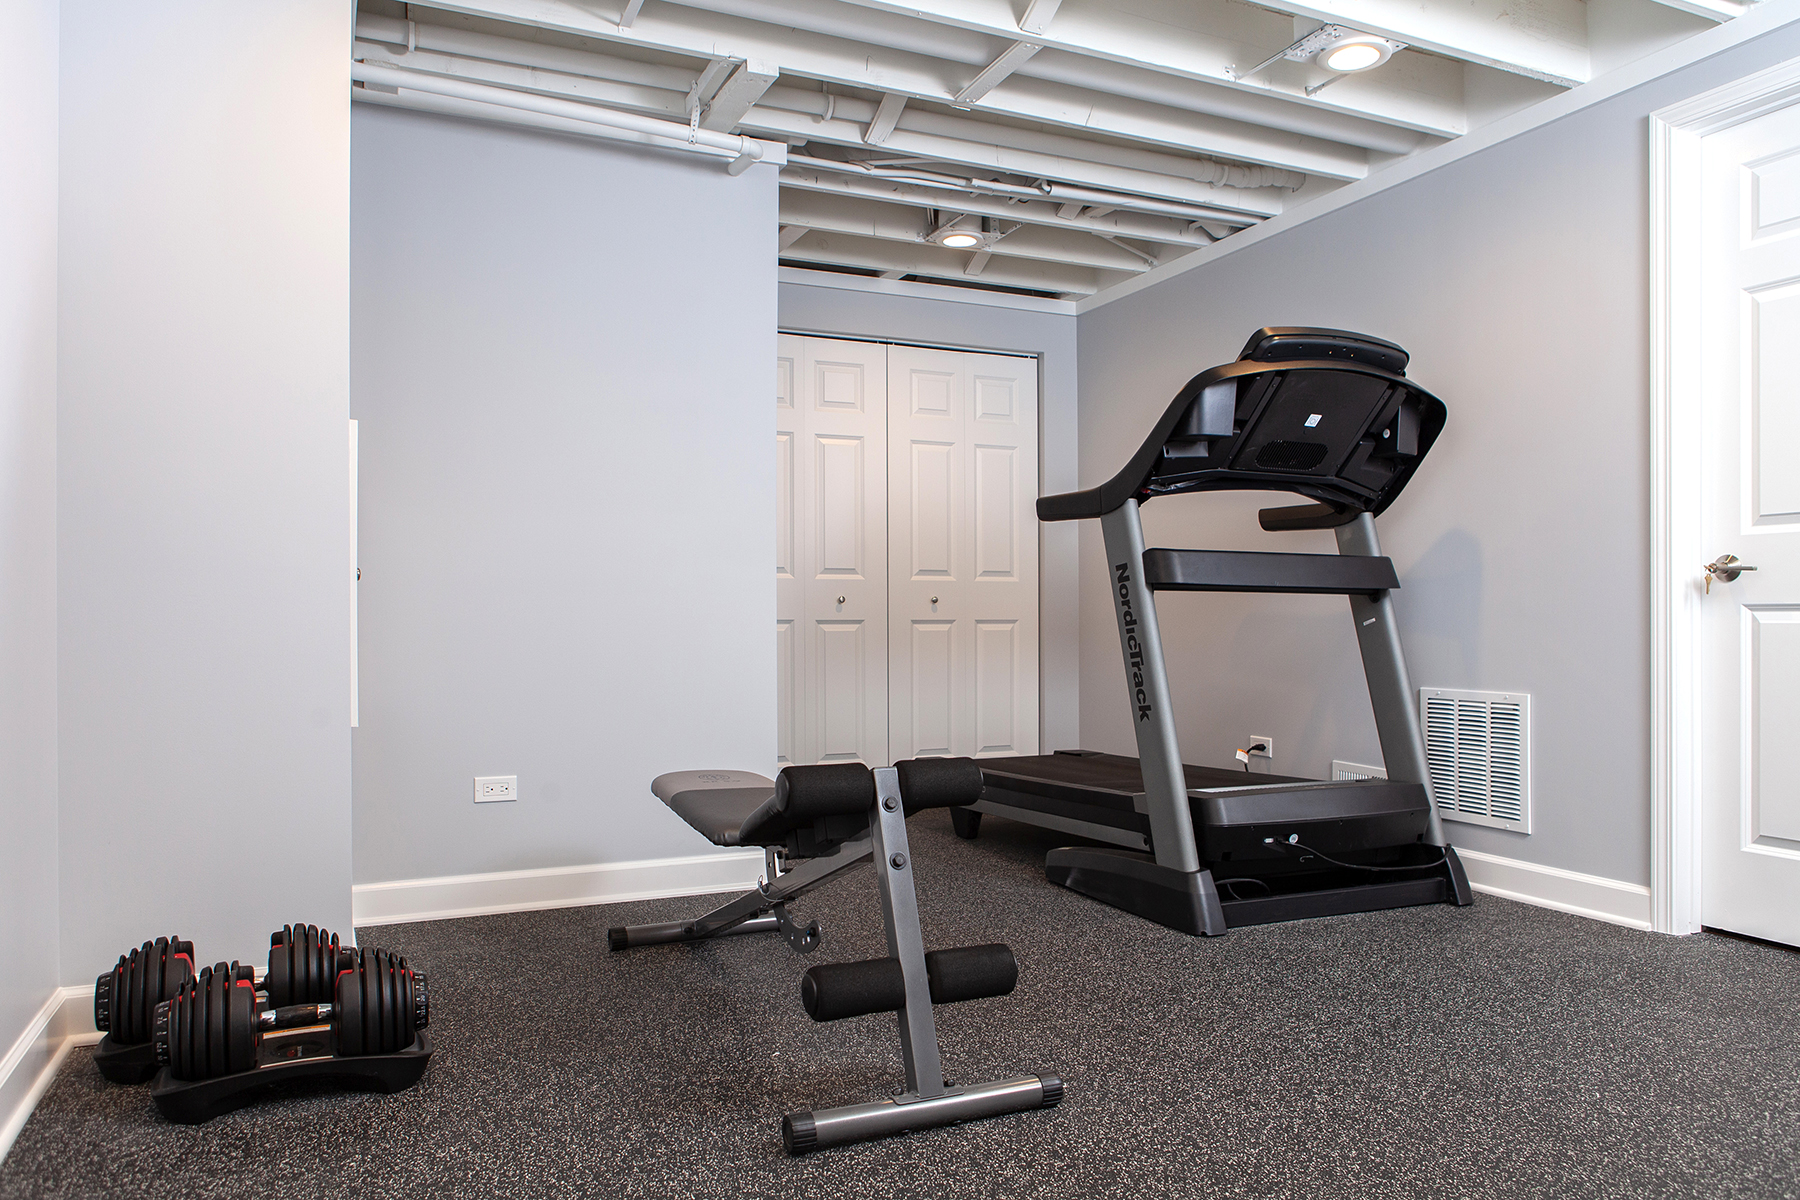 Remodeled basement workout room in Libertyville, Illinois with treadmill, free-weights and padded floors.